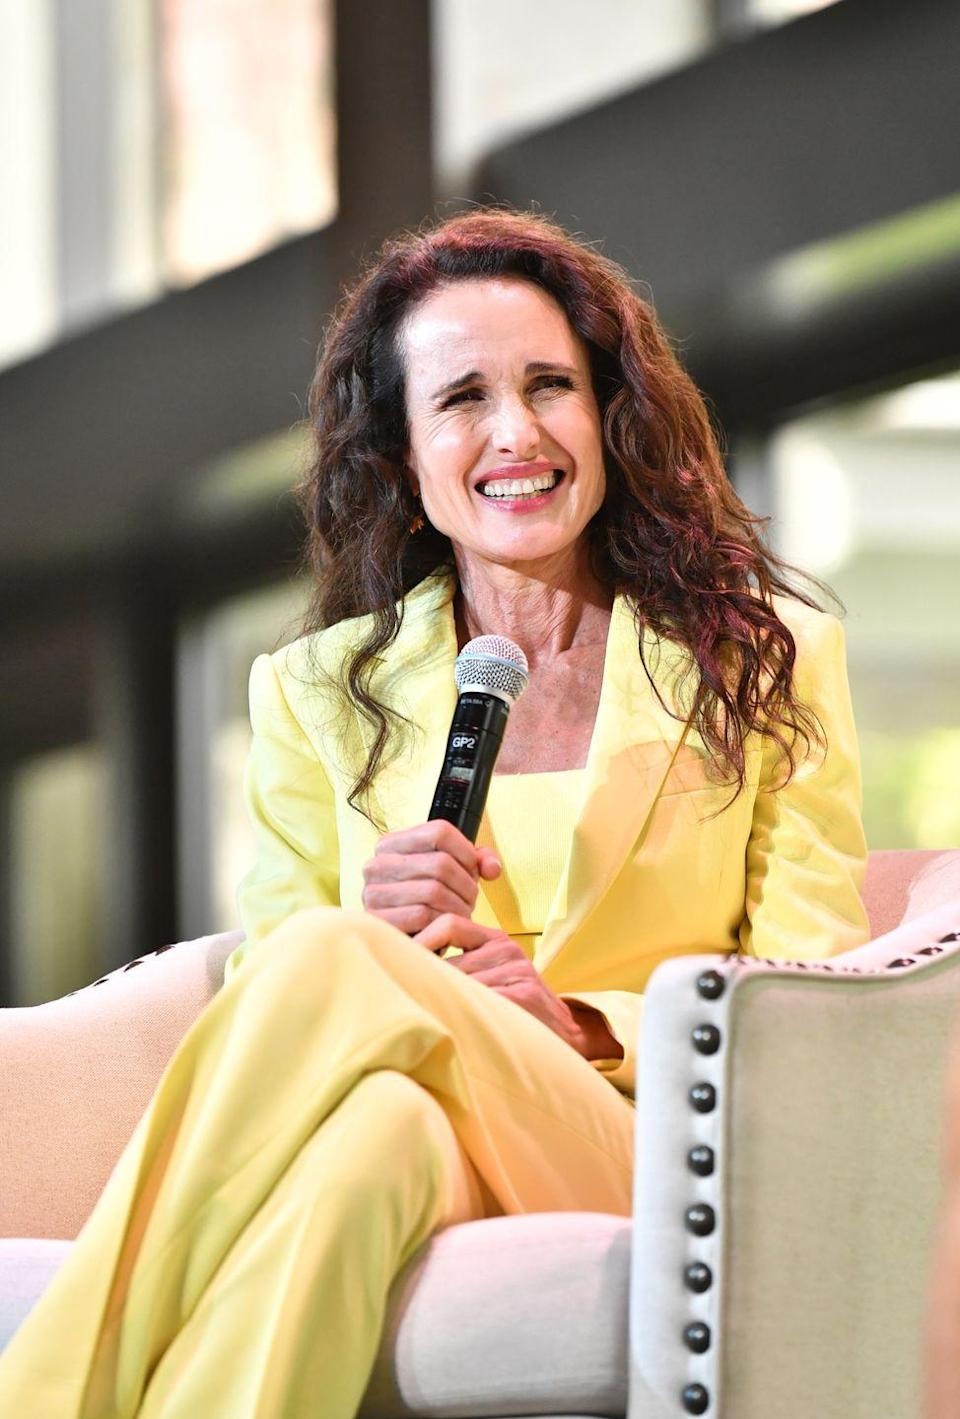 "<p>Post-<em>Groundhog Day</em>, Andie MacDowell co-starred with Hugh Grant in <em><a href=""https://www.amazon.com/Four-Weddings-Funeral-Hugh-Grant/dp/B0032KSXRW?tag=syn-yahoo-20&ascsubtag=%5Bartid%7C2164.g.35217692%5Bsrc%7Cyahoo-us"" rel=""nofollow noopener"" target=""_blank"" data-ylk=""slk:Four Weddings and a Funeral"" class=""link rapid-noclick-resp"">Four Weddings and a Funeral </a></em>and transitioned to the small screen for series like<em> Jane by Design </em>and<em> Cedar Cove. </em>The 62-year-old has also served as a spokeswoman for L'Oréal for more the 30 years! </p>"